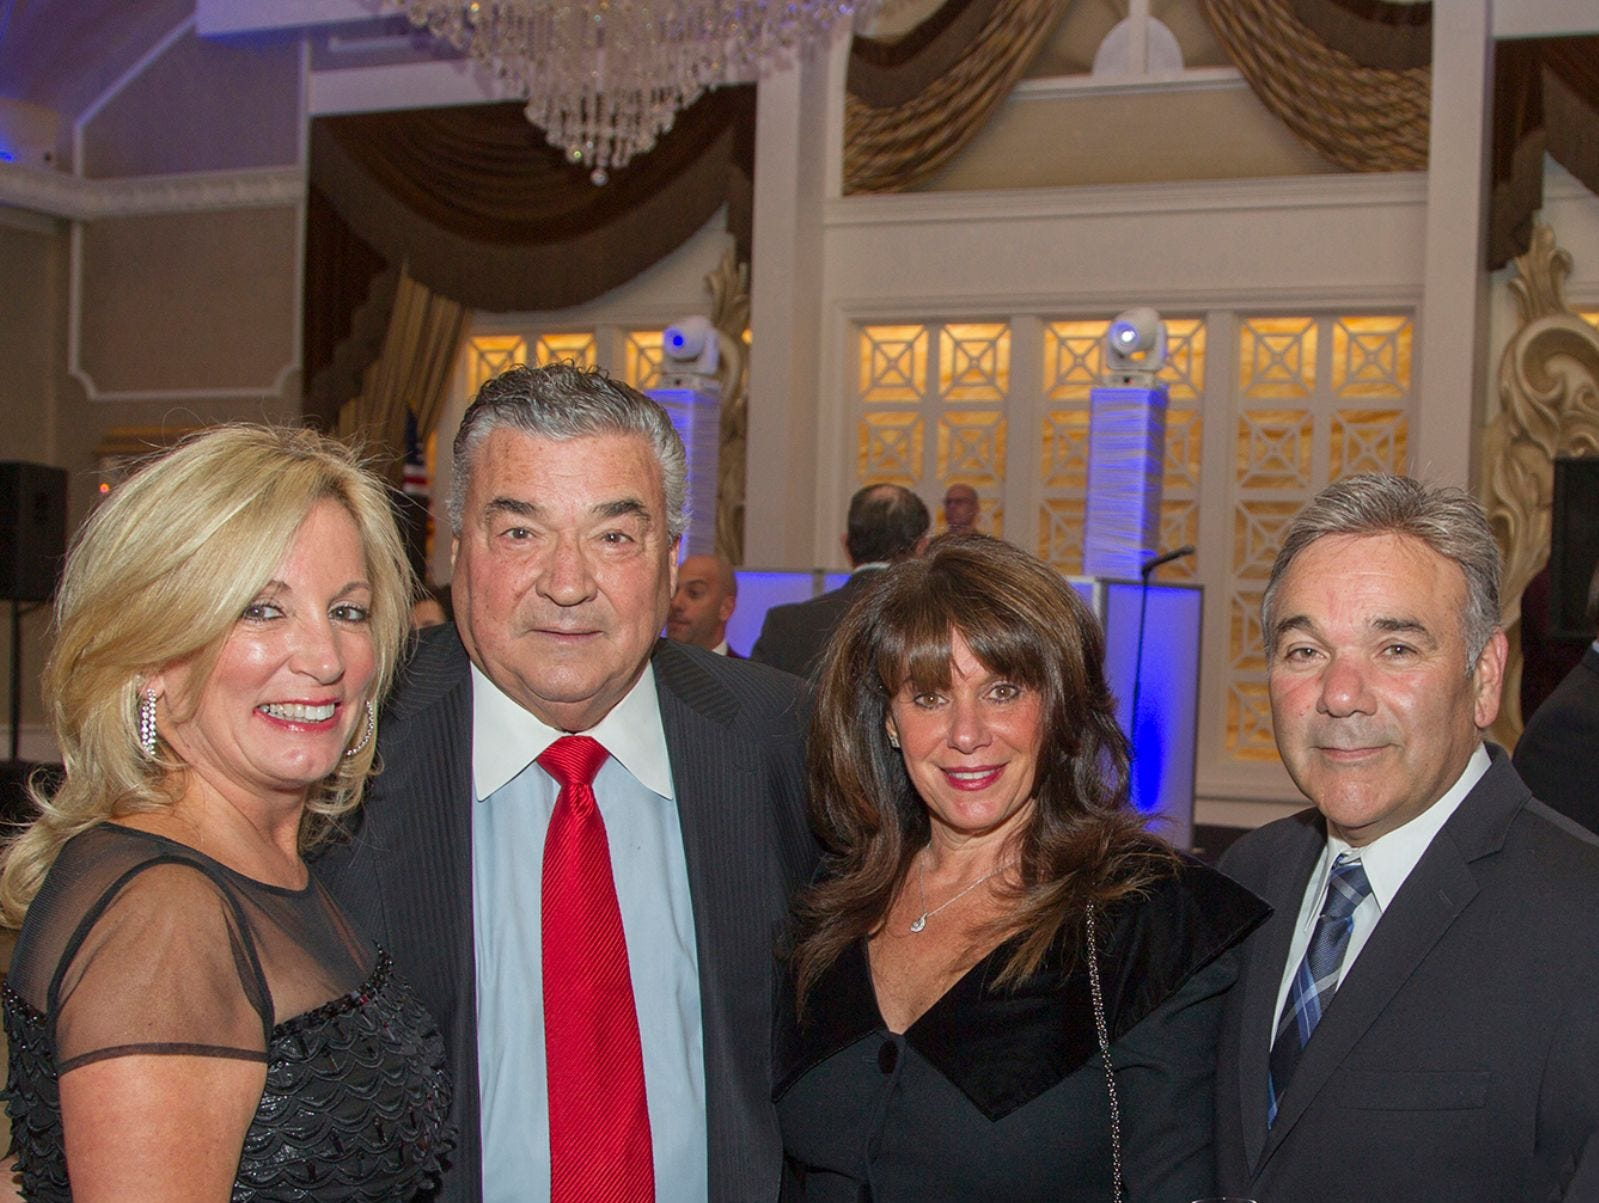 Lori Rubino, Joseph M. Sanzari, Regina and John Salemme, Holy Name Medical Center held its 2018 MS Center Awards Reception at the Venetian in Garfield. 10/23/2018